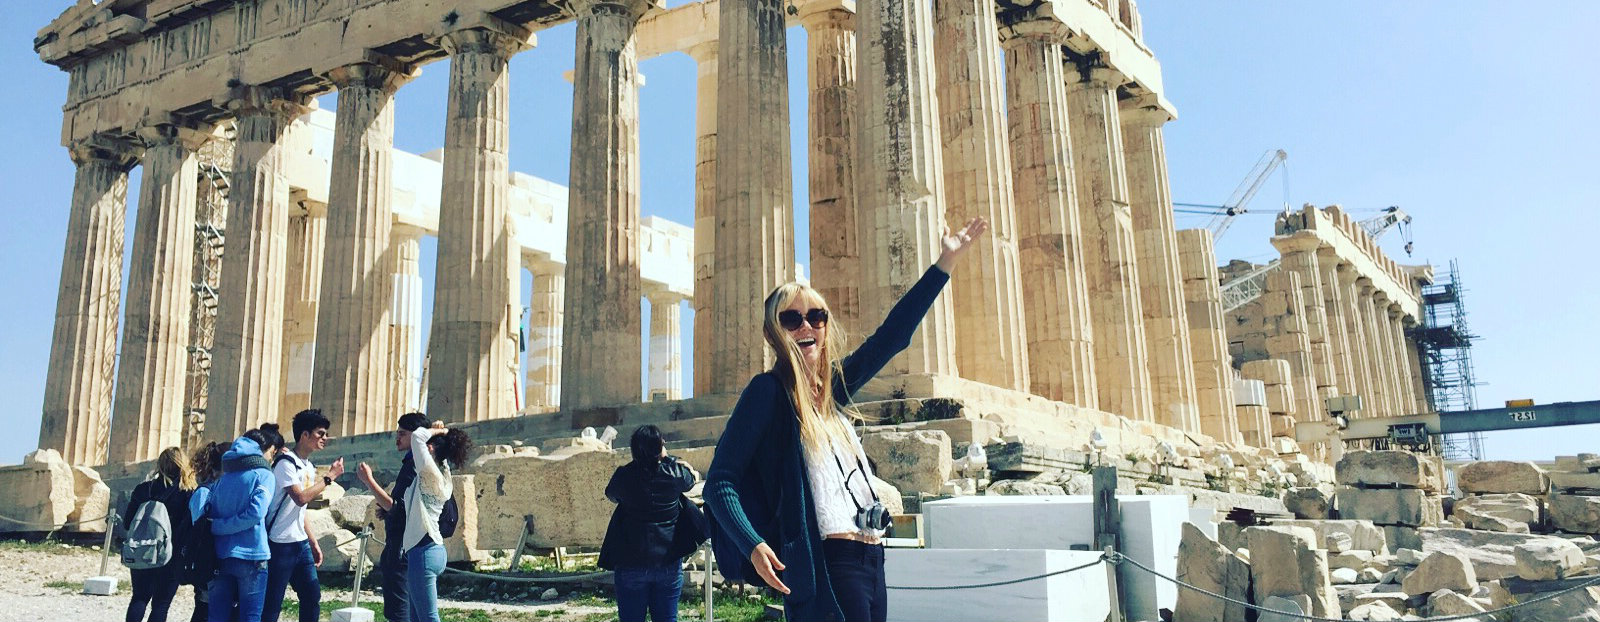 Girl in front of the Parthenon in Greece